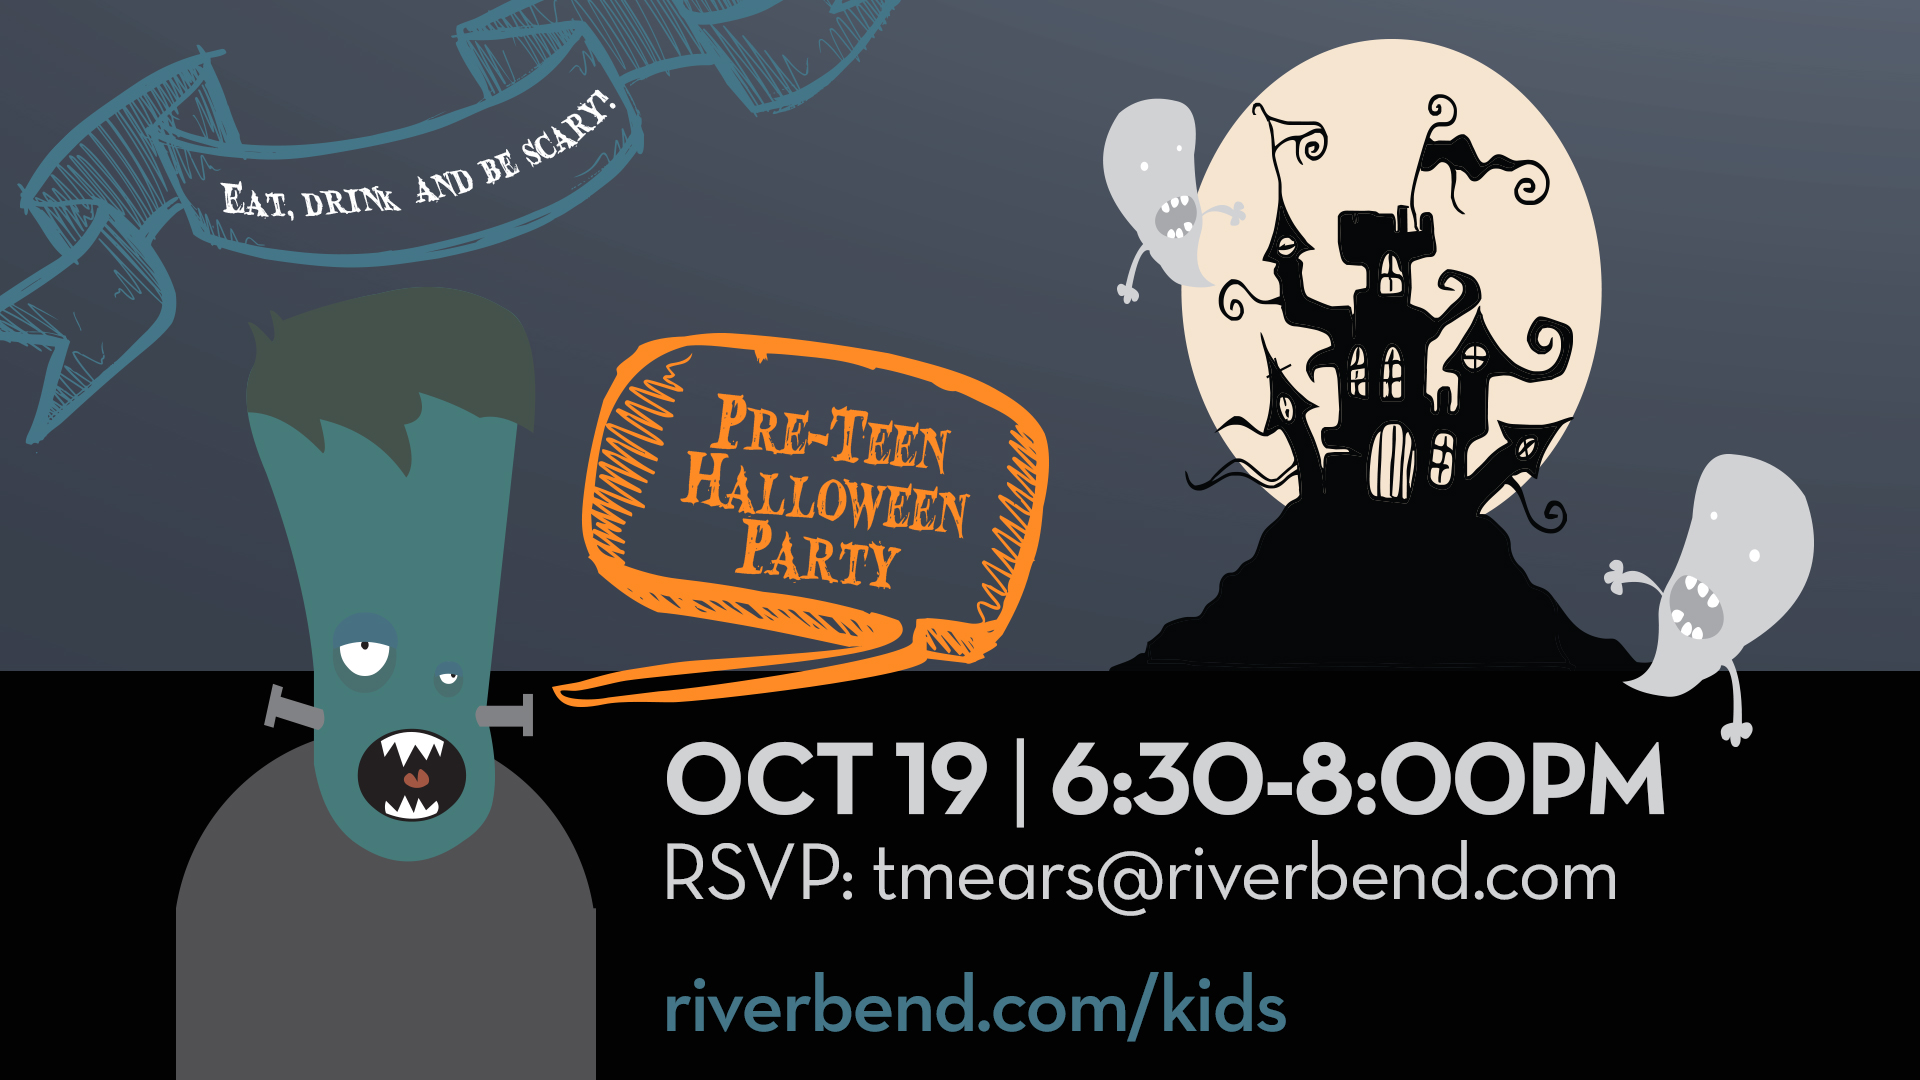 PreteenHalloweenParty_1920x1080.jpg